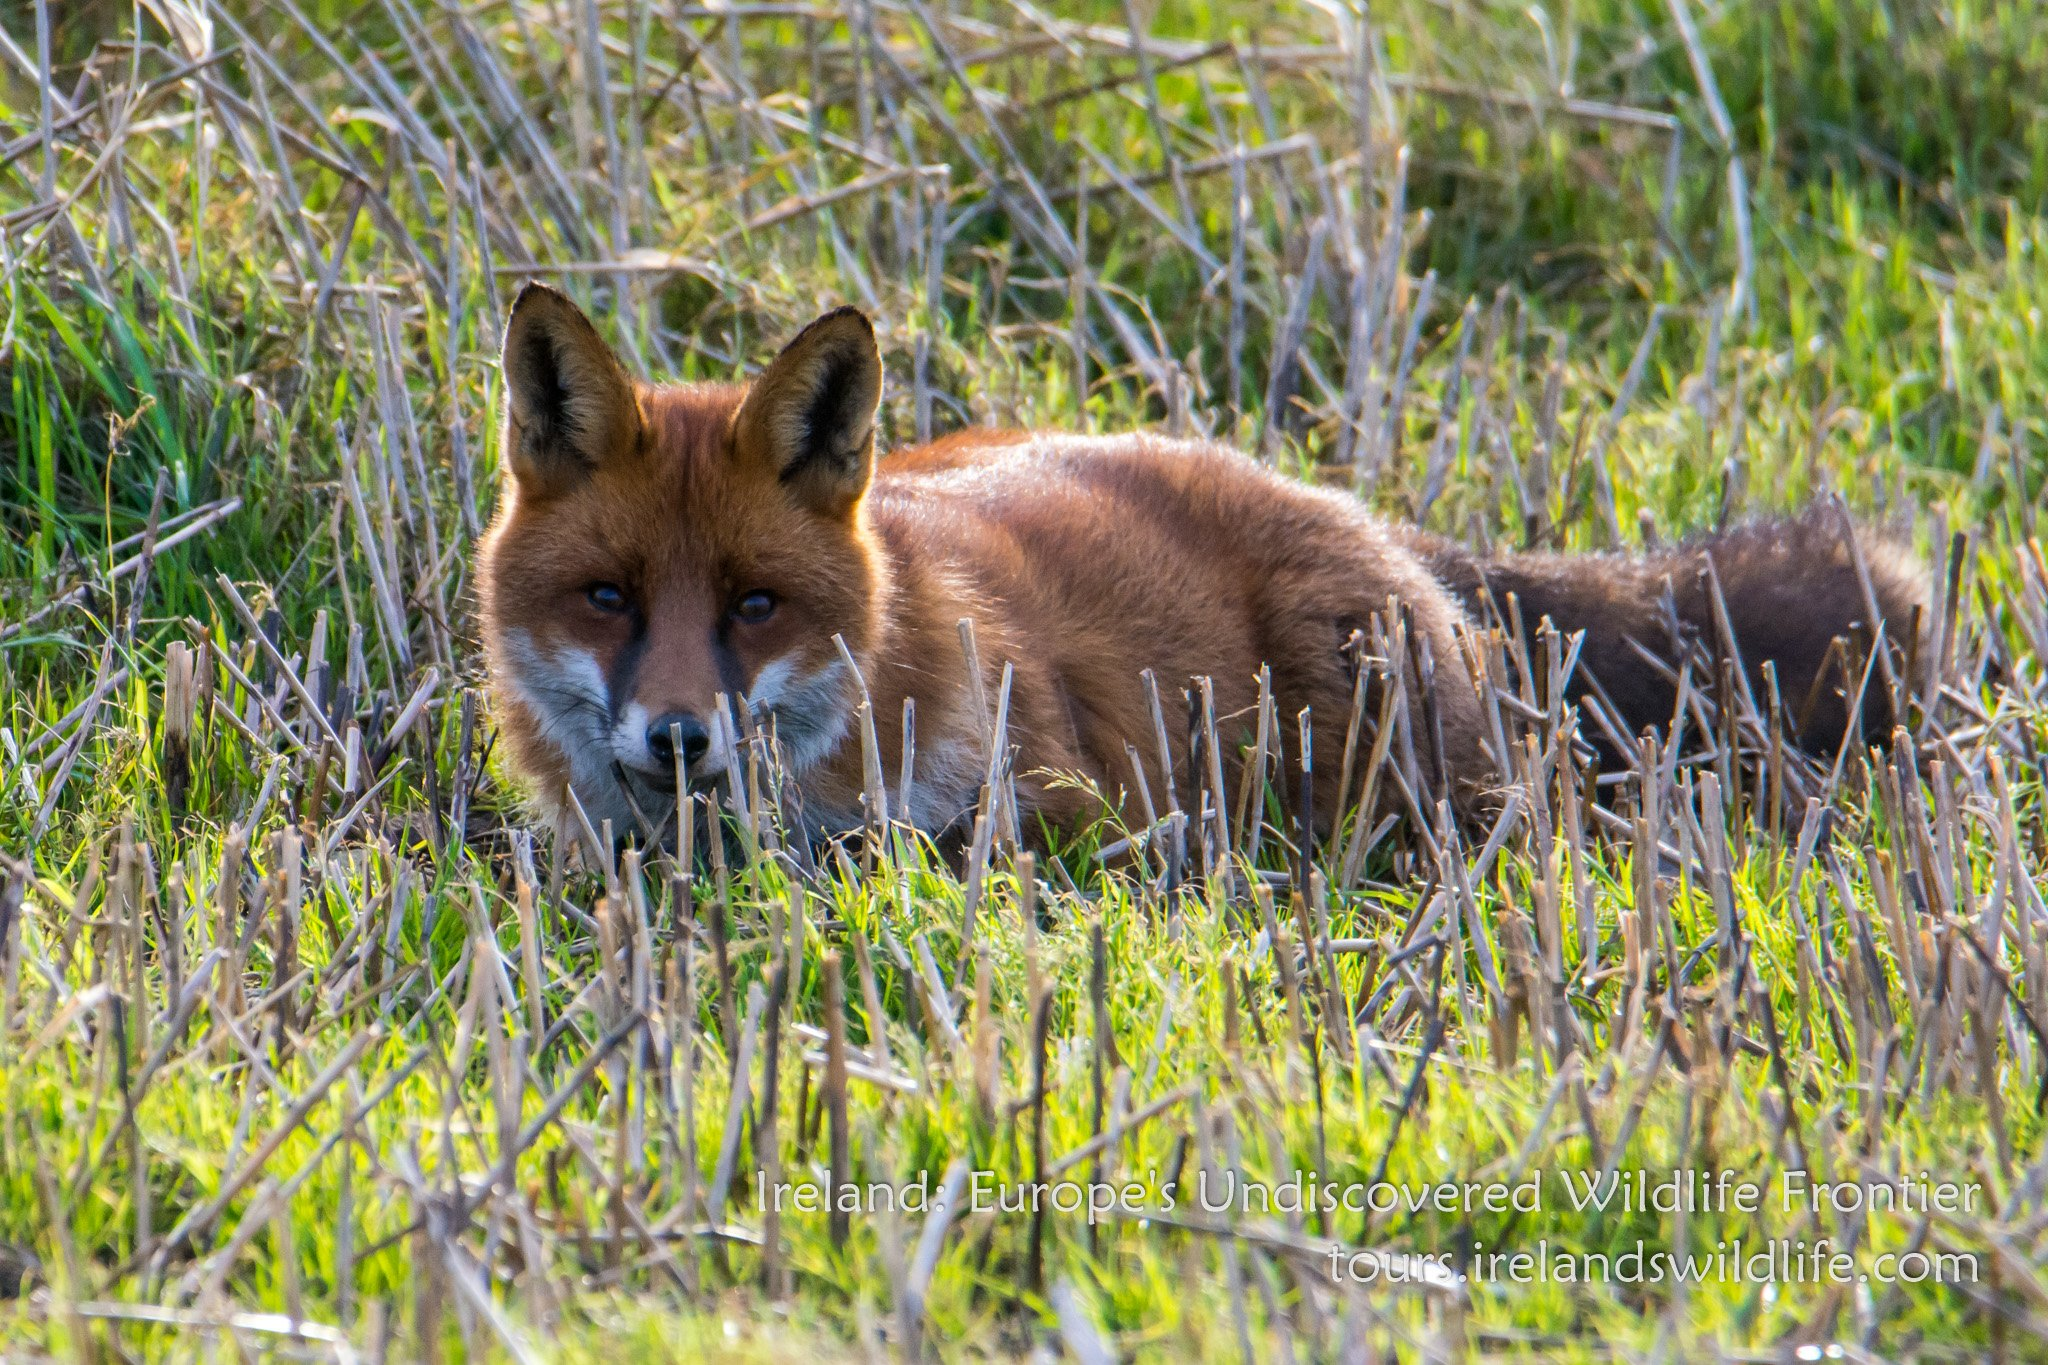 A red fox checks out a group of wildlife watchers on Ireland's south coast.